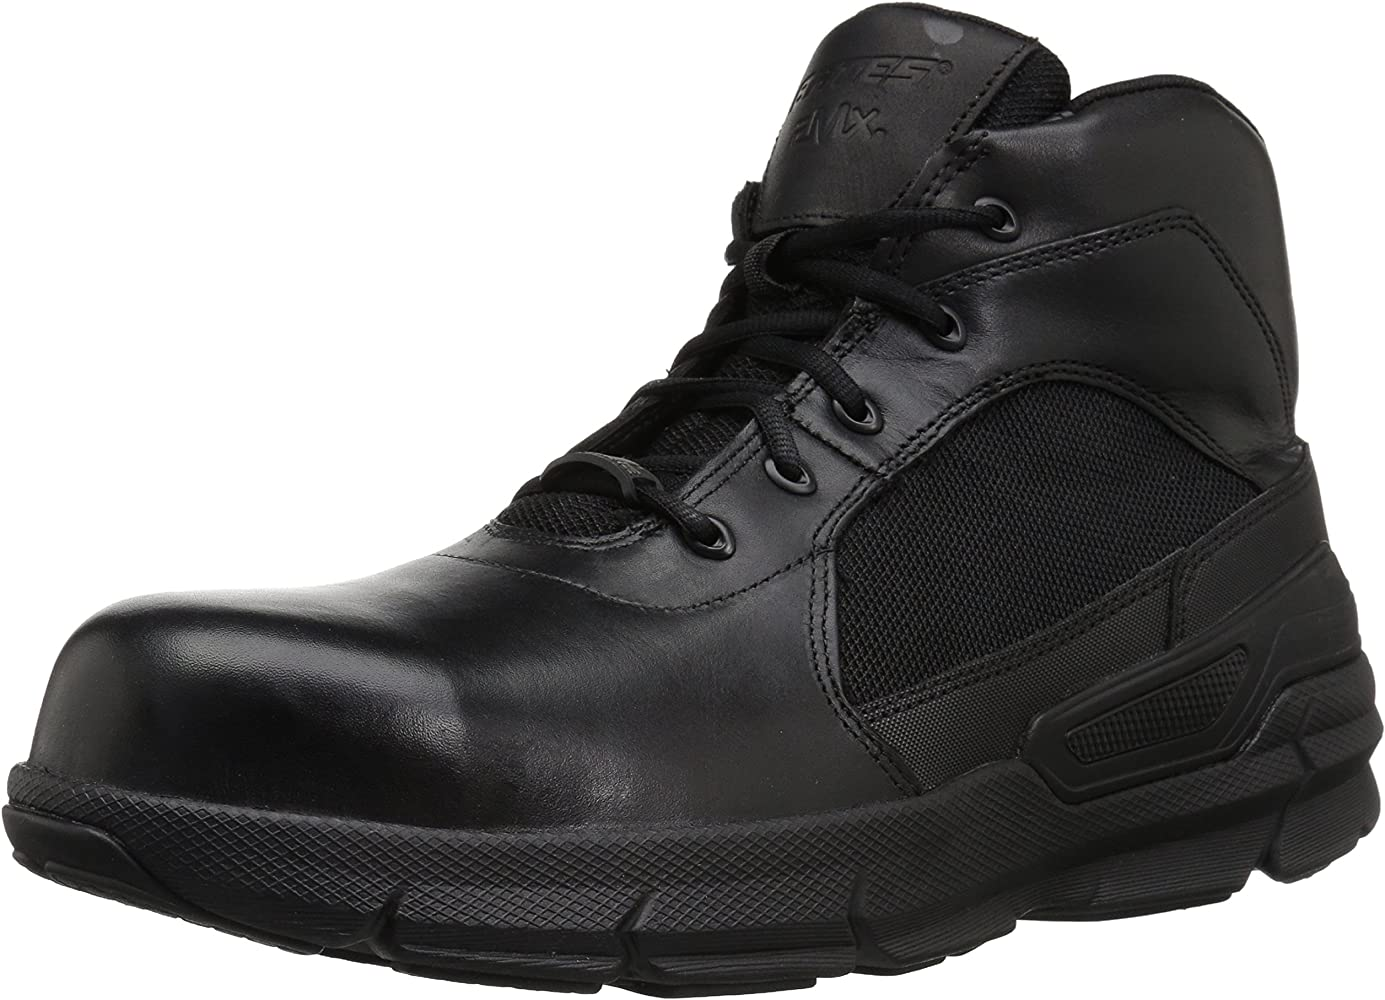 Bates Mens Charge Composite Toe Side Zip